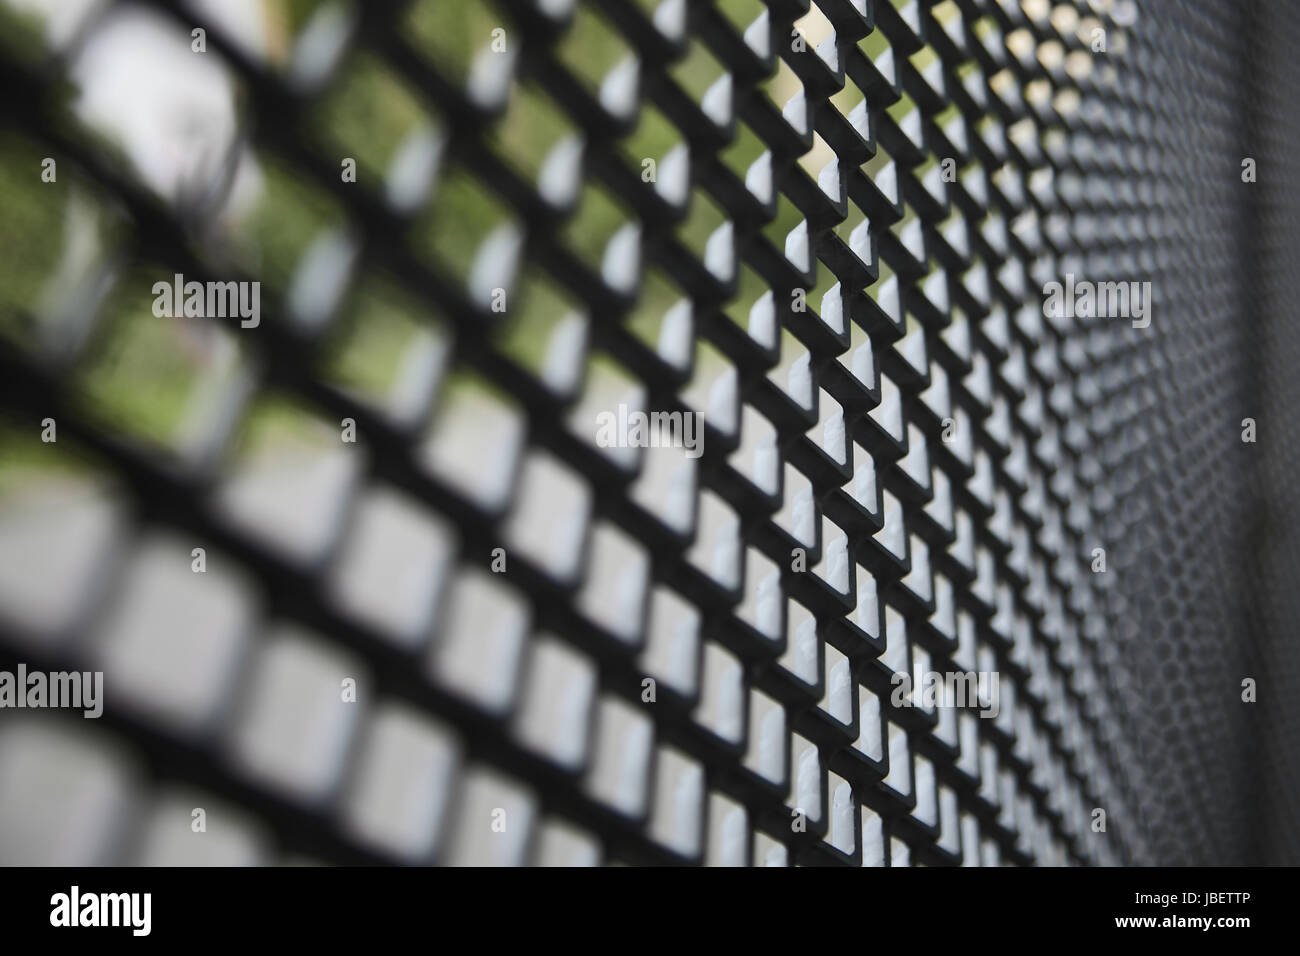 curved metal fence - Stock Image